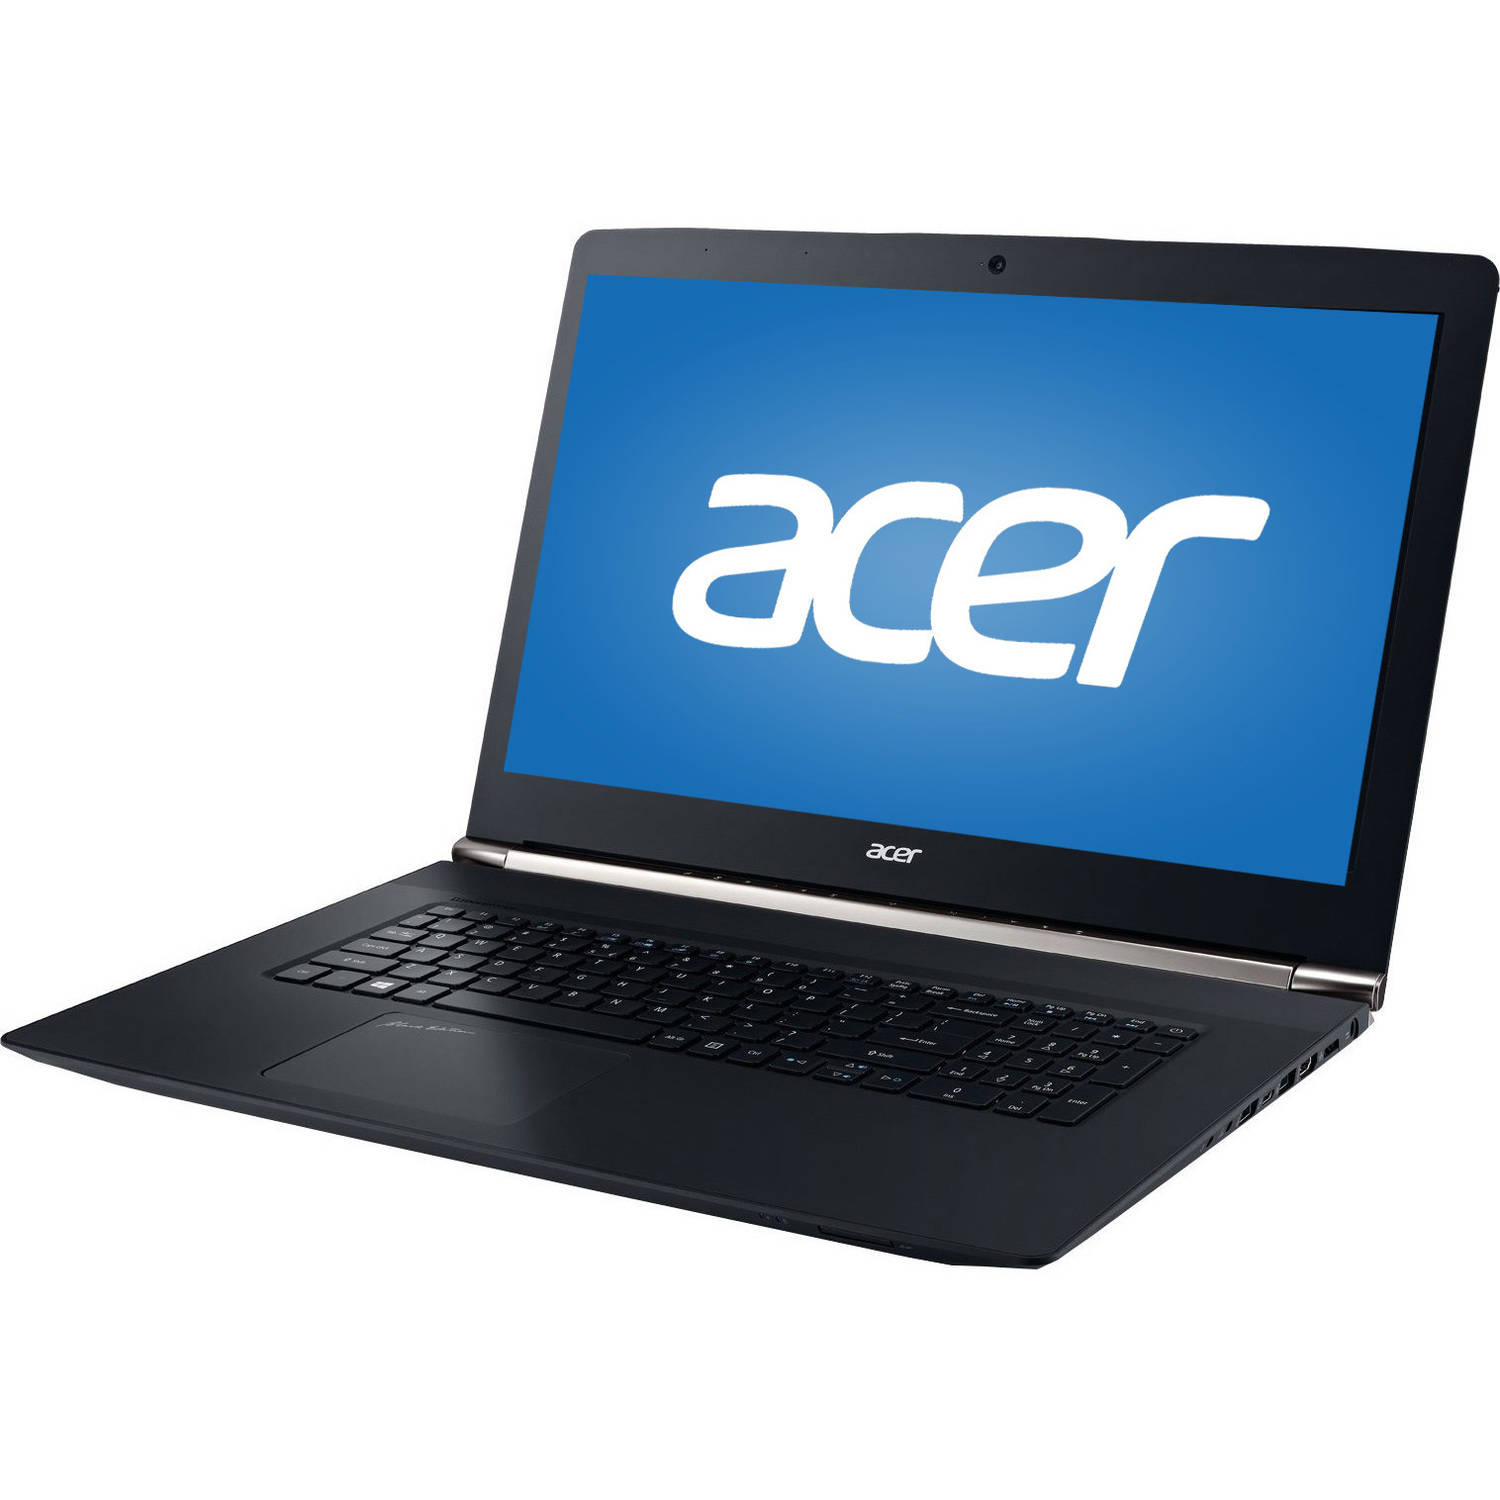 "Manufacturer Refurbished Acer Aspire VN7-792G-7524 17.3"" Laptop, Windows 10 Home, Intel Core i7-6700HQ... by Acer"